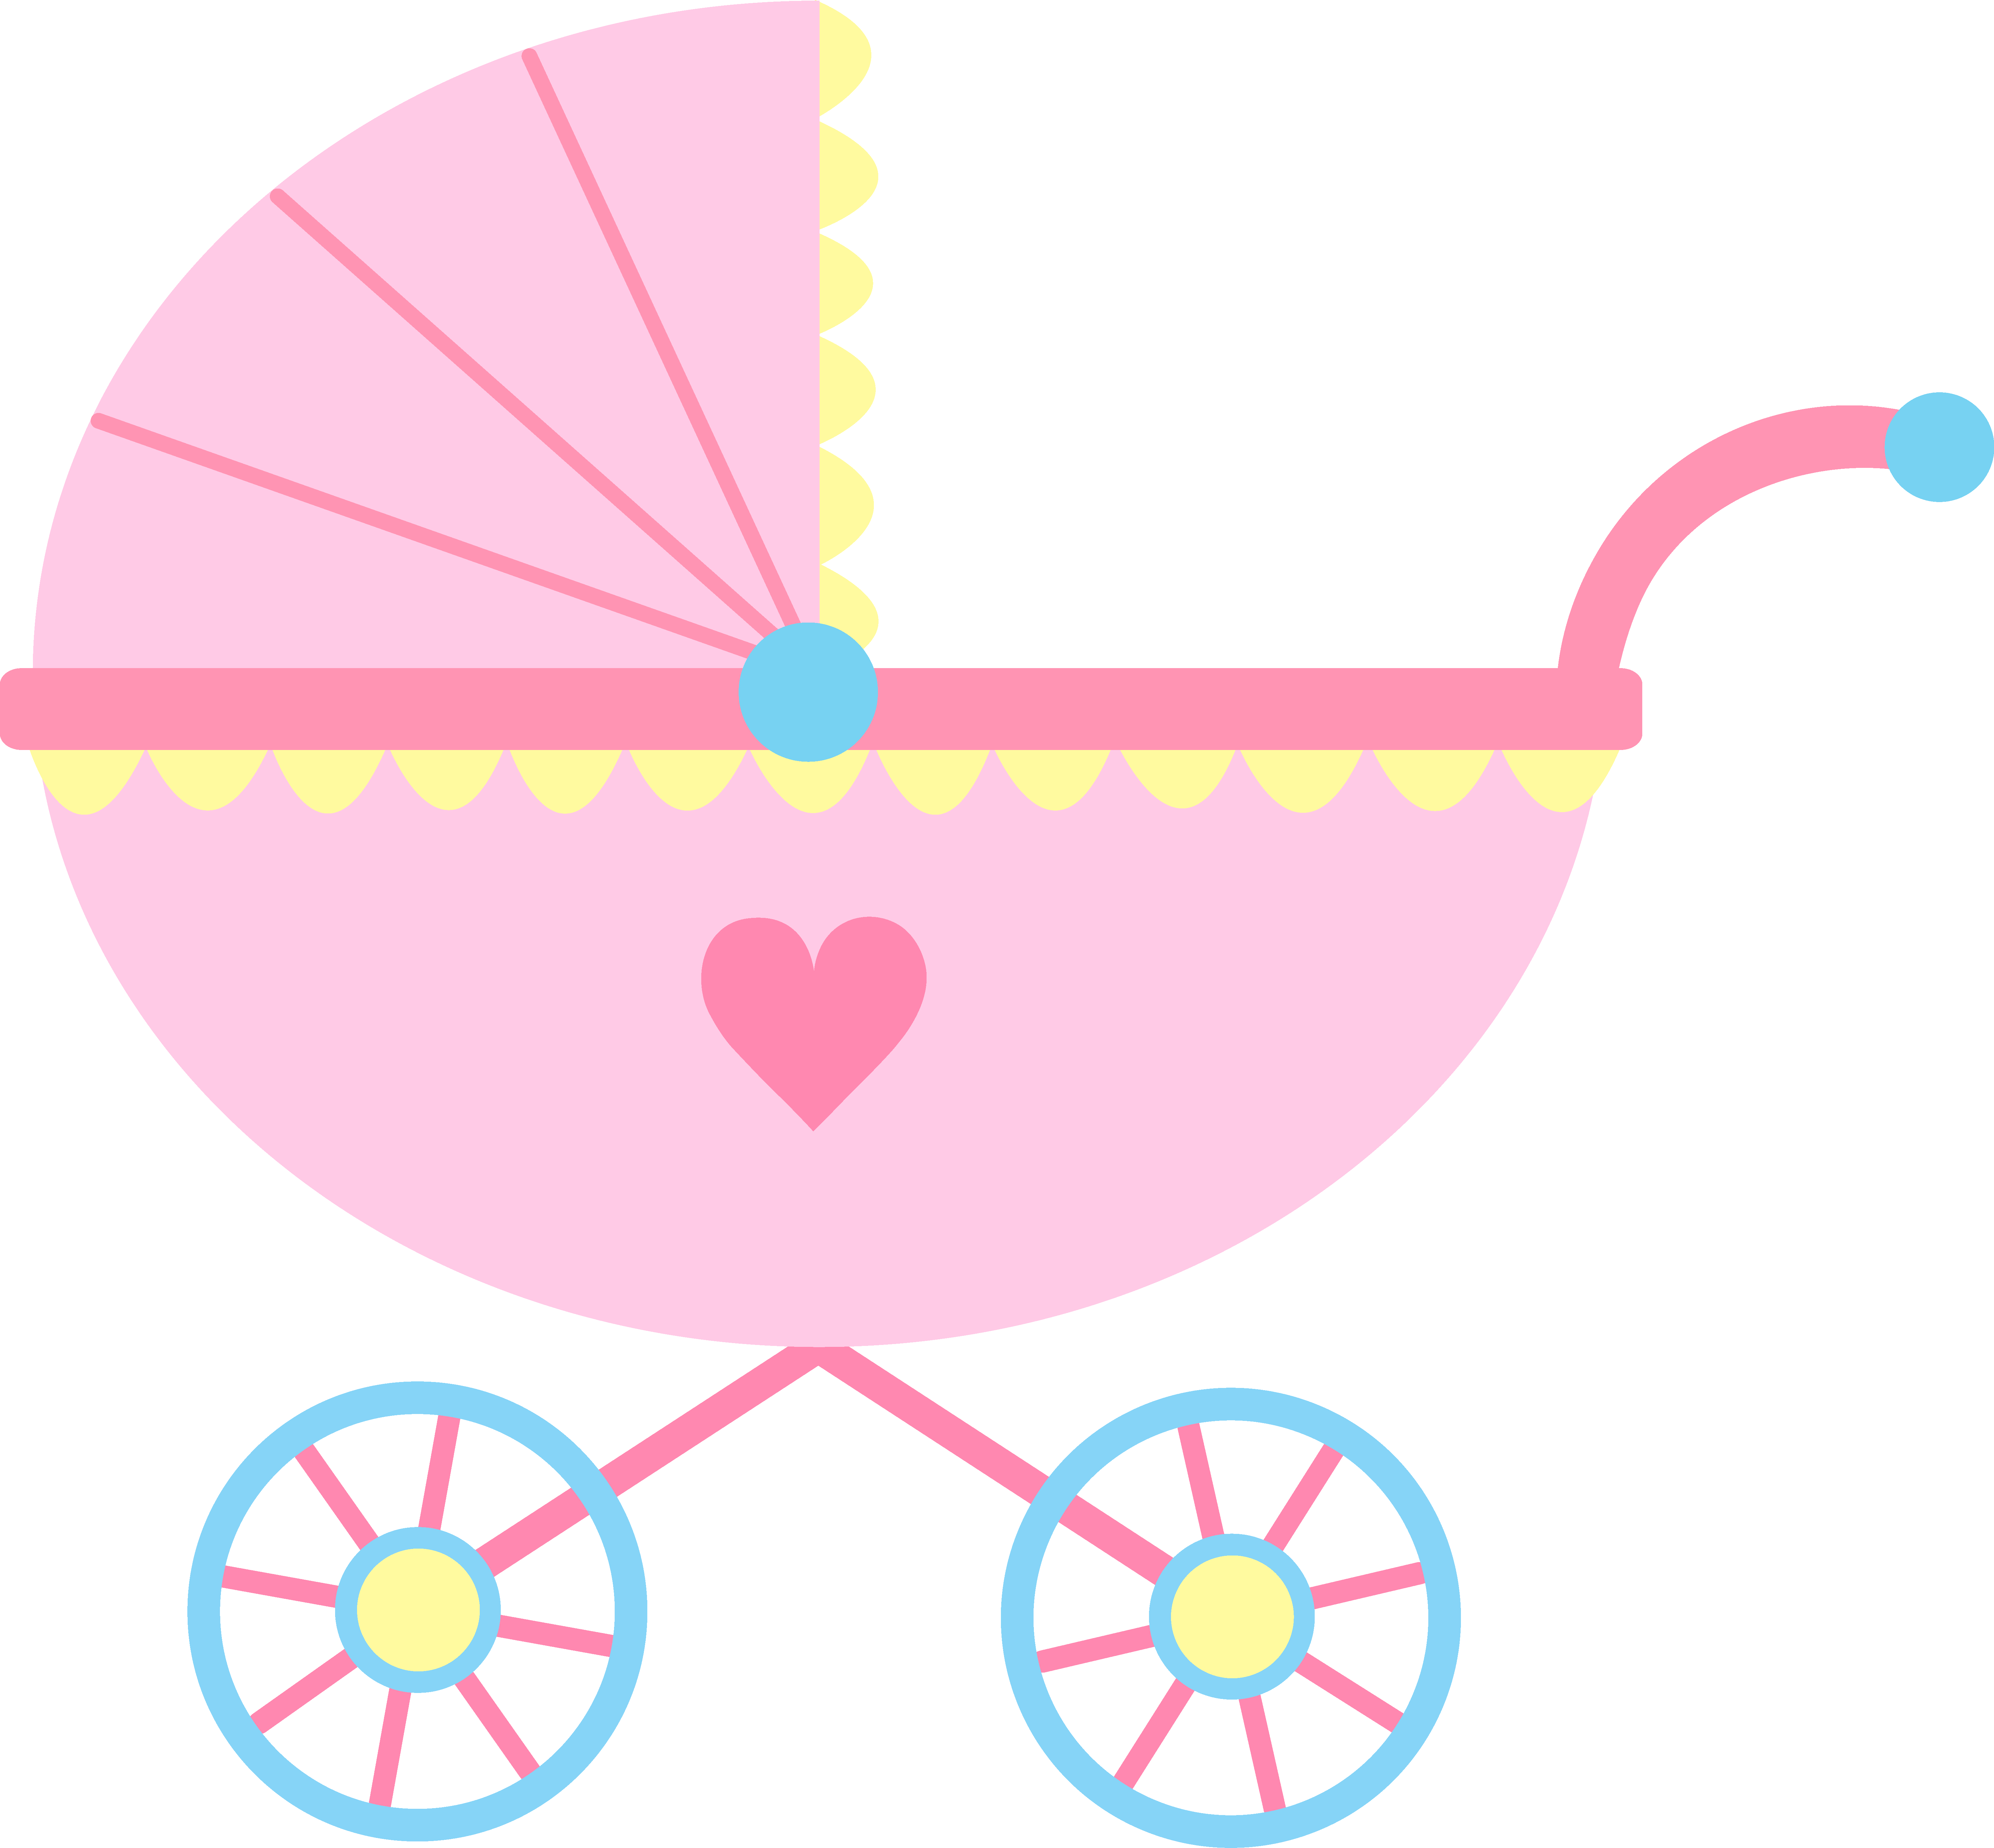 Carriage clipart cinderella theme. Baby shower clear background